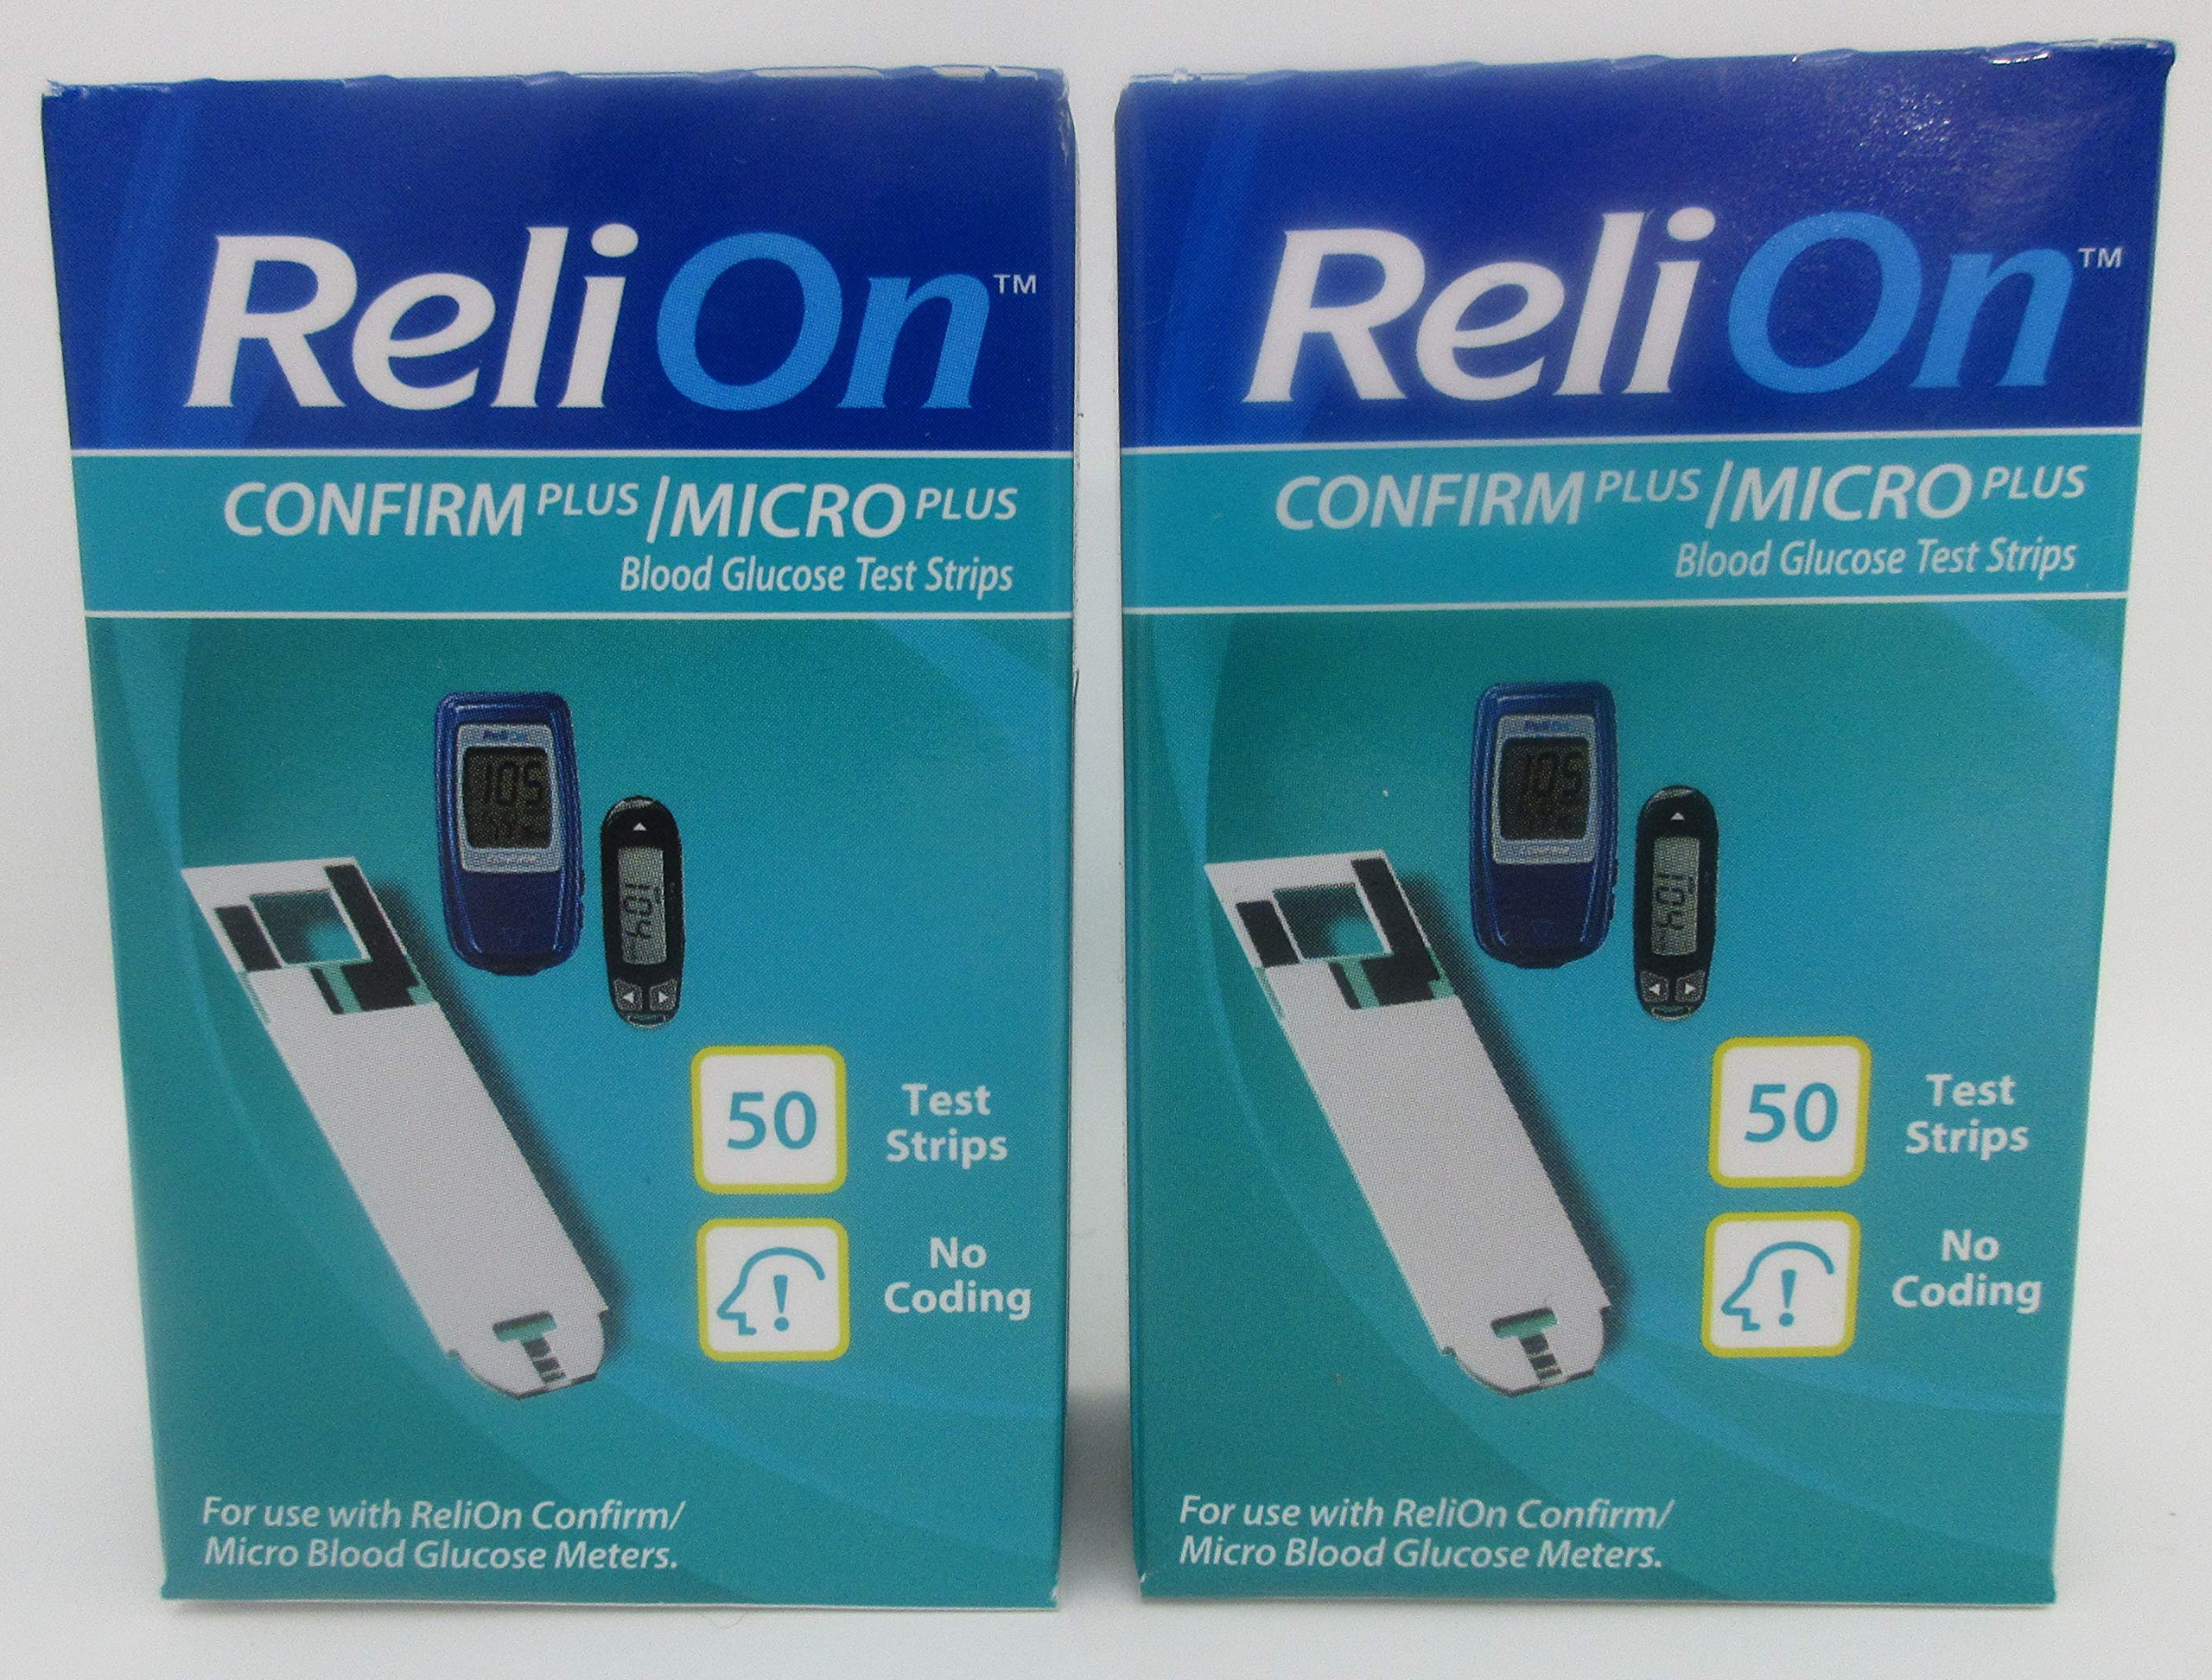 ReliOn Confirm Plus/Micro Plus Blood Glucose Test Strips - 100 ct (Two 50 ct Boxes) by Reli On